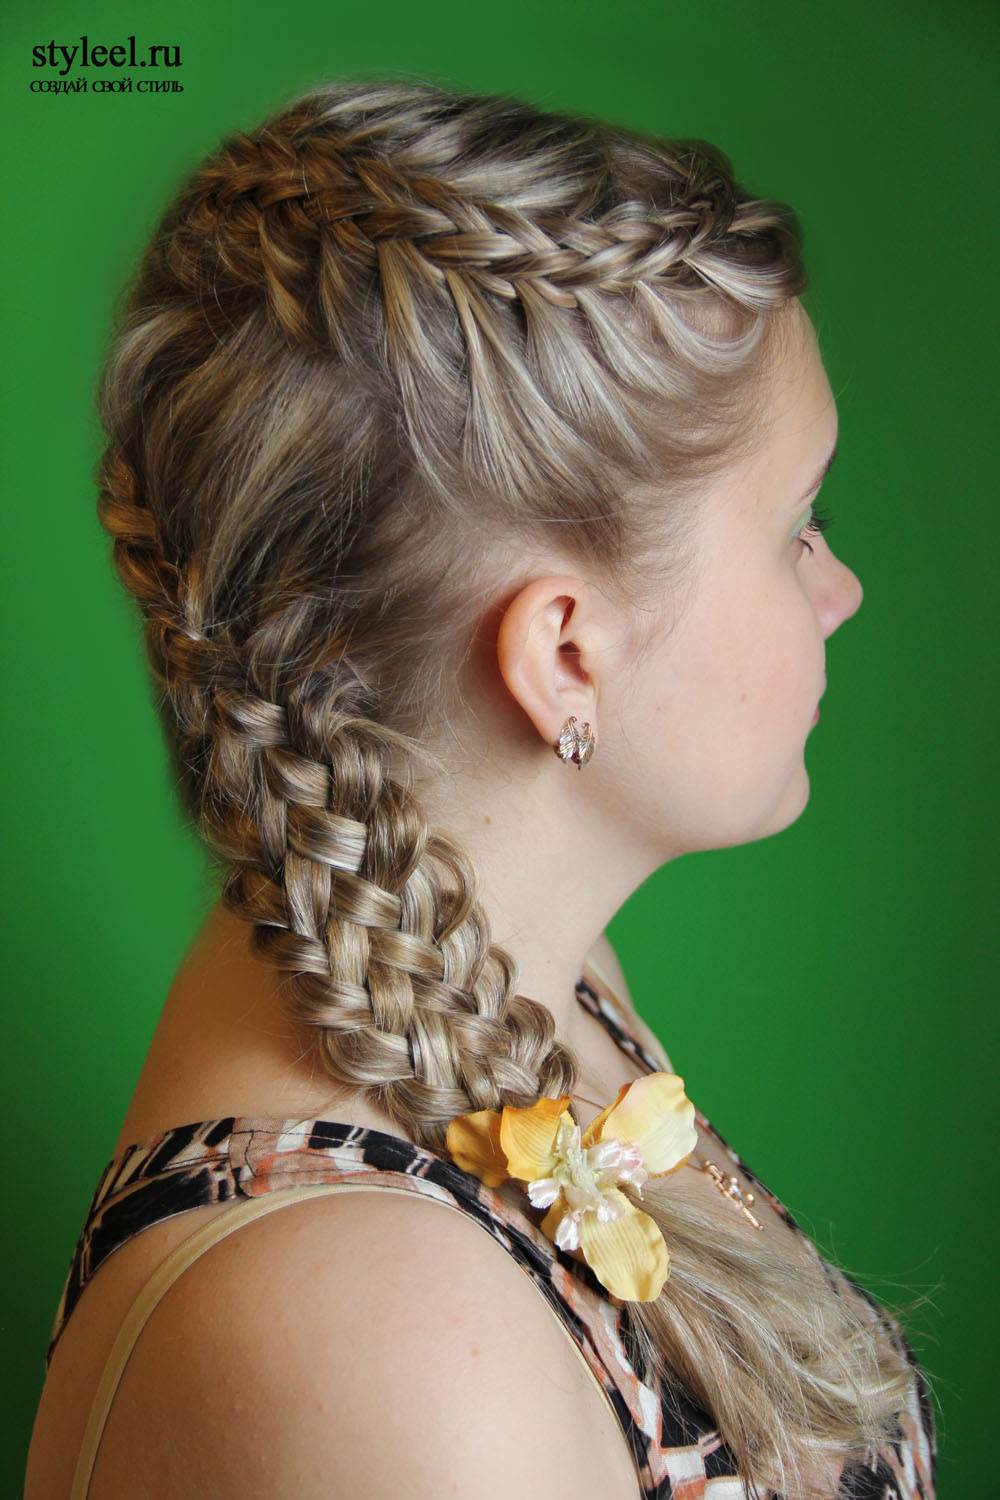 Fishbone Braid Y Braid Loose Braid Lace Braid Bun Rope Braid The Wiki